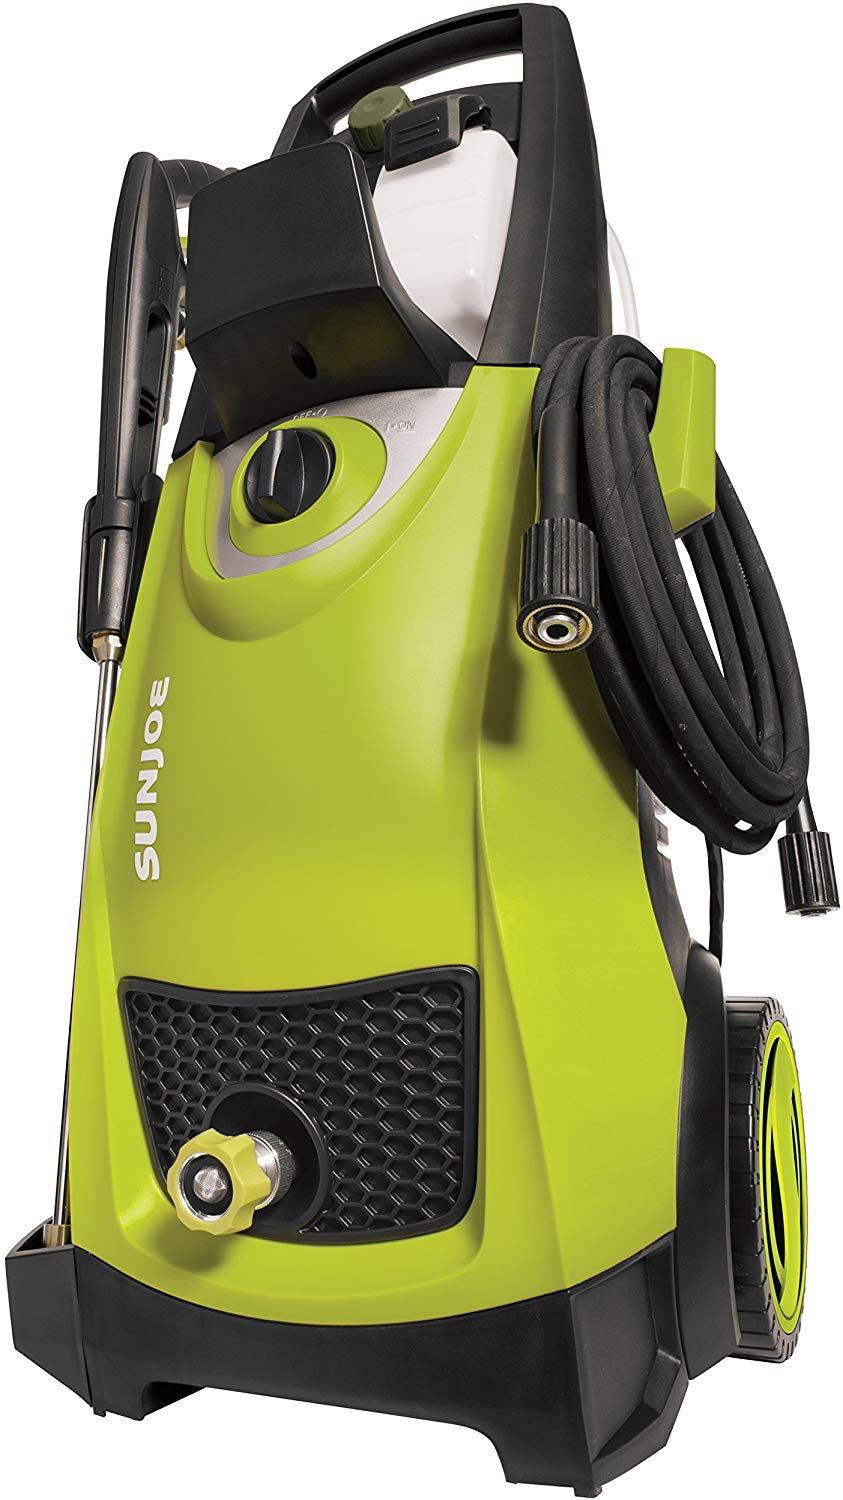 top electric power washer